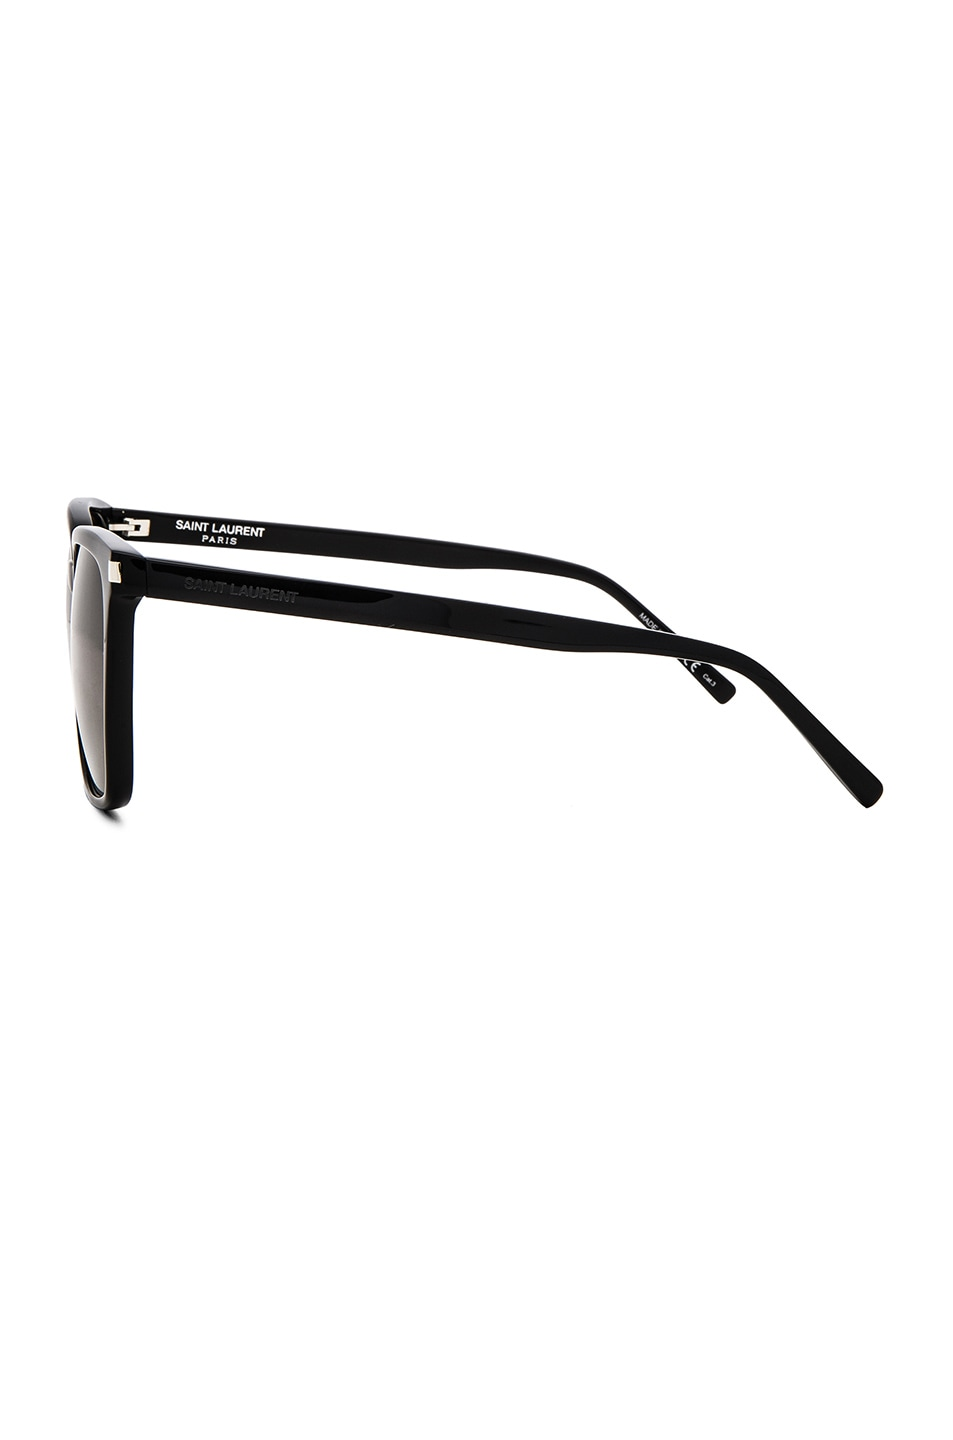 32a72d854f01 Image 3 of Saint Laurent SL 93 Sunglasses in Black & Smoke